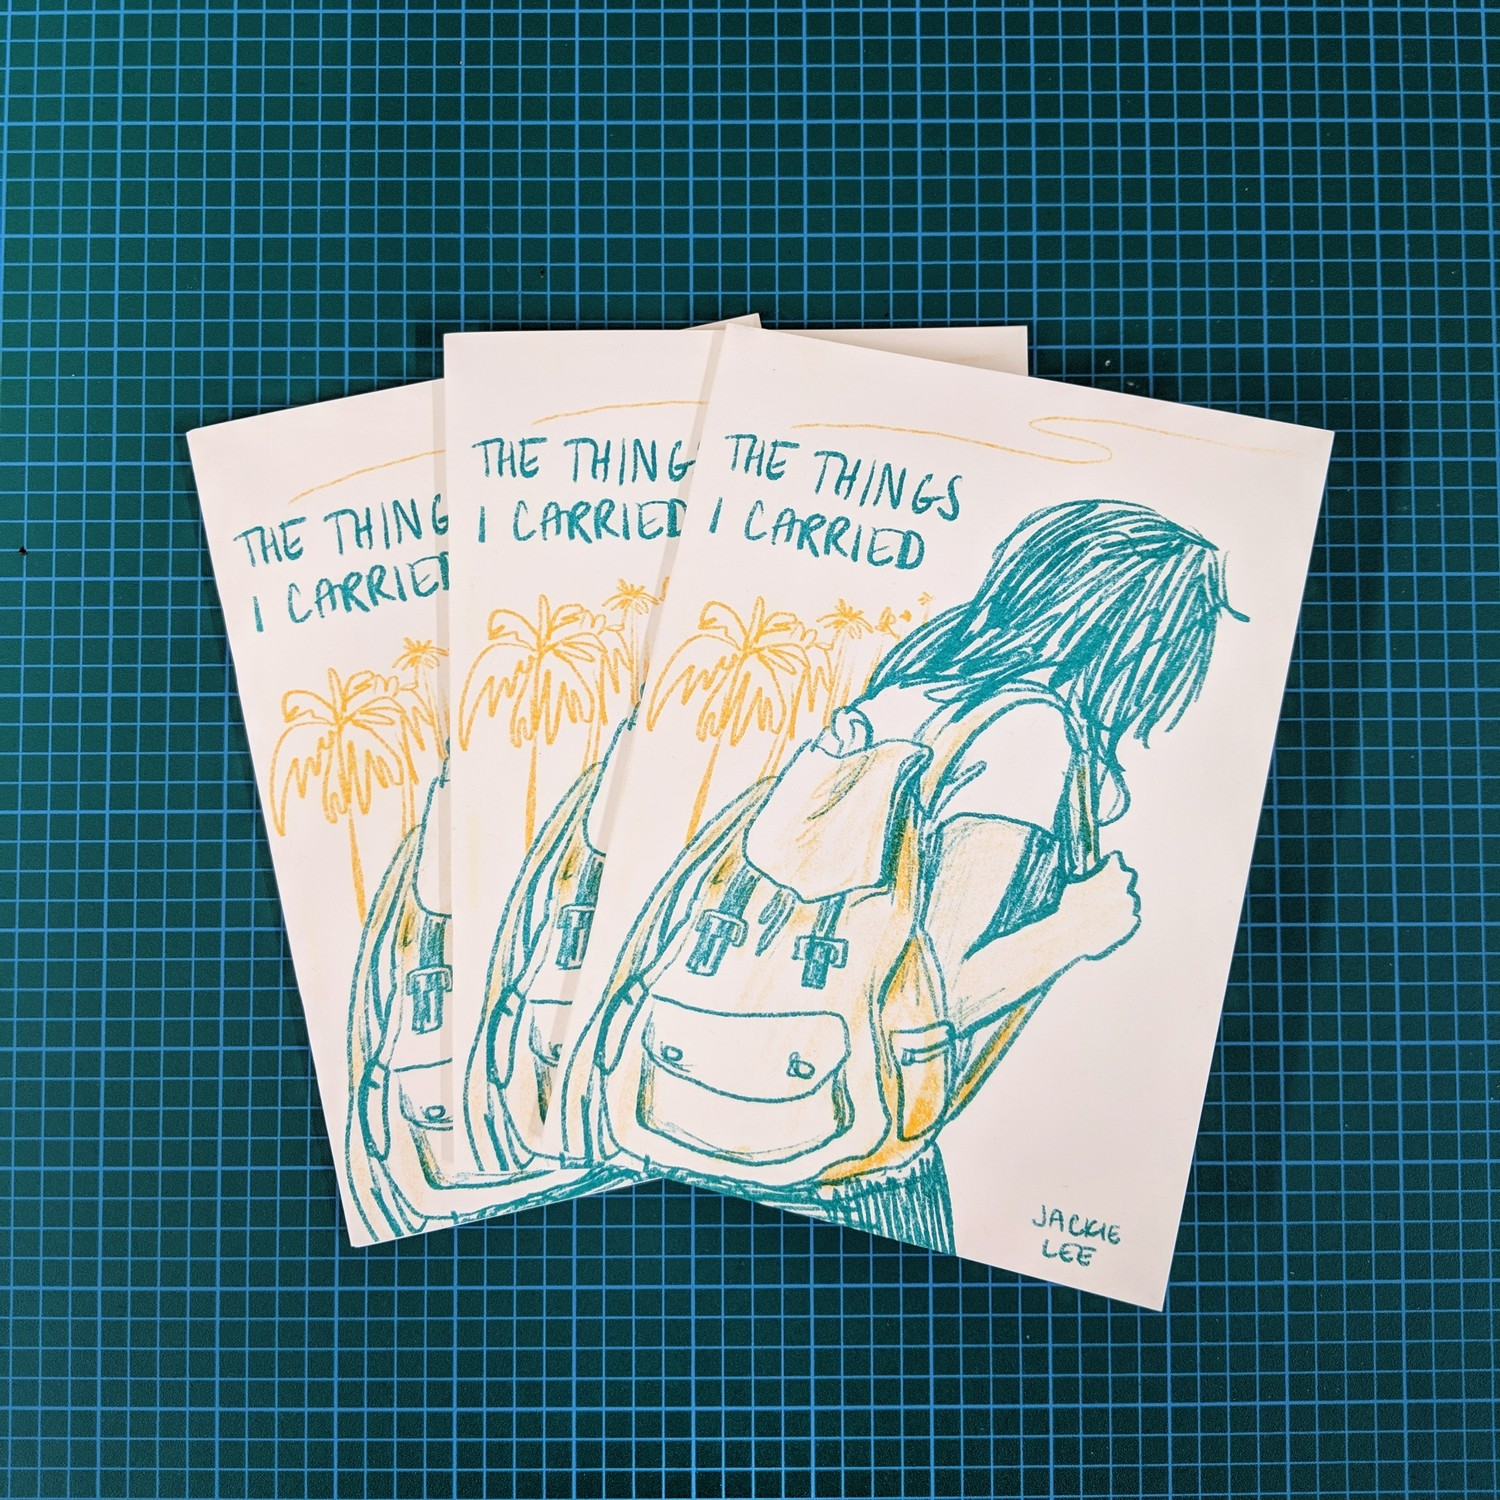 The Things I Carried Zine